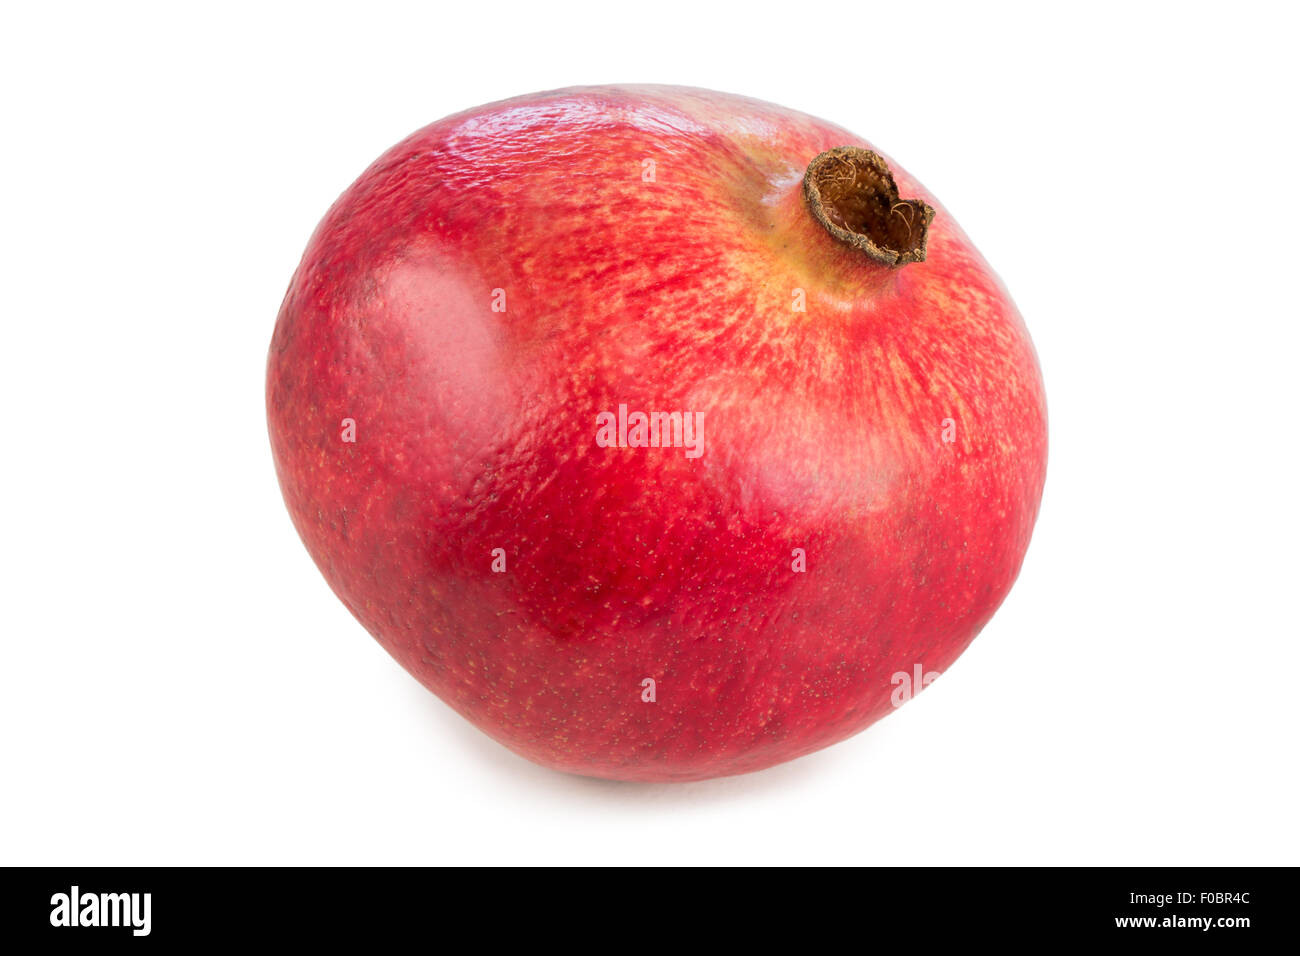 Close-up of a whole ripe pomegranate (Punica granatum) with a shadow, isolated on white background. - Stock Image